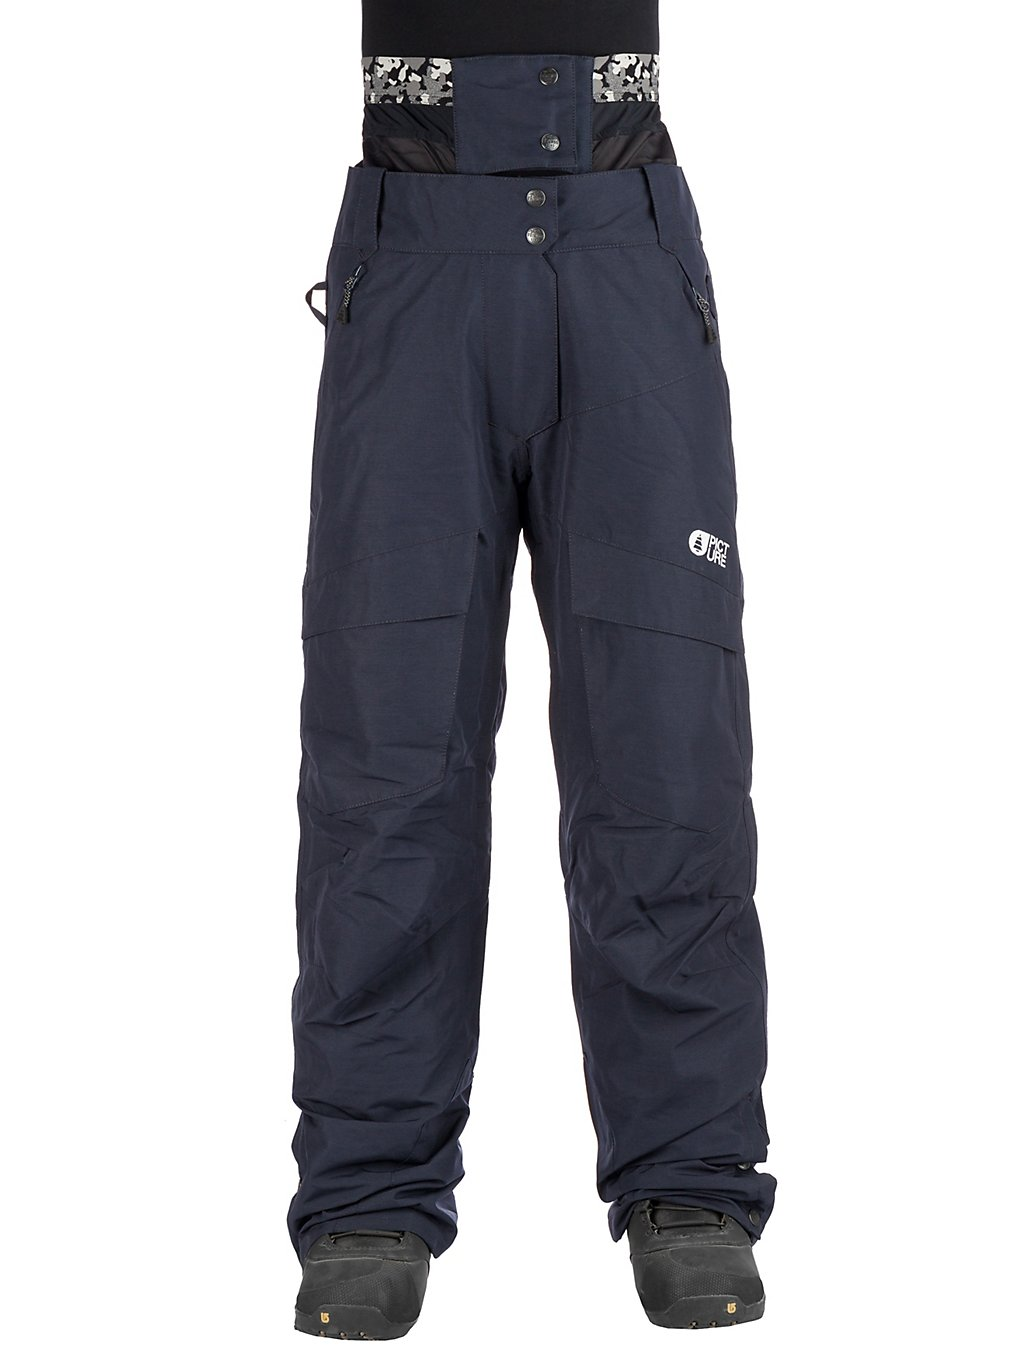 Picture Week End Pants blauw